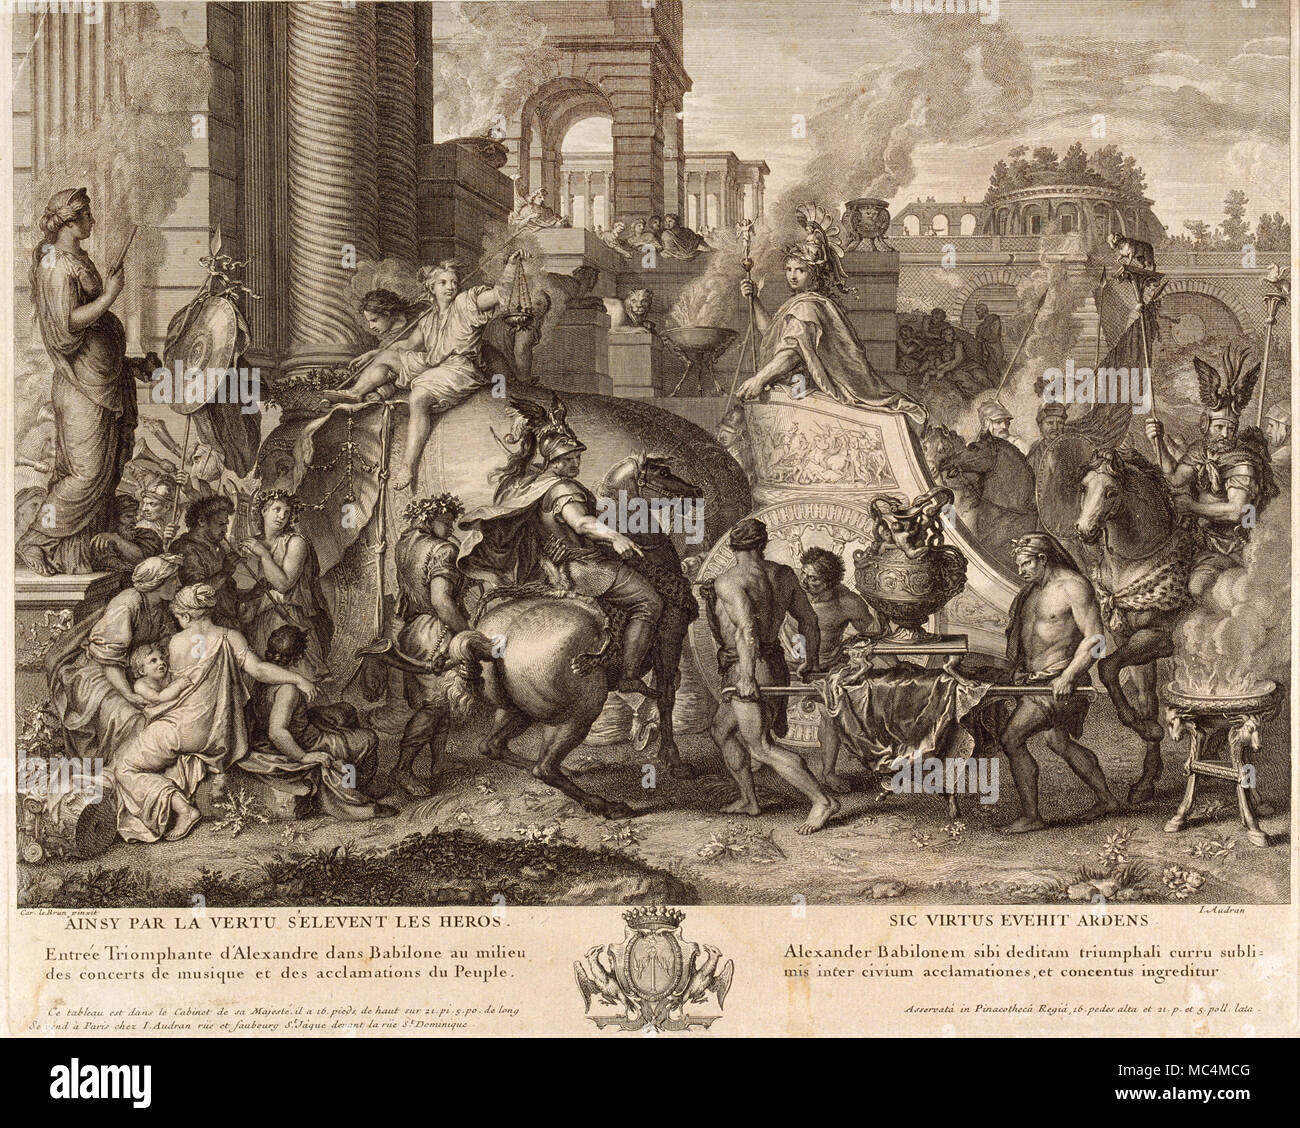 Jean Audran, Alexander the Great Enters Babylonia. Circa 1703-1708. Etching  and burin on paper. Museu Nacional d'Art de Catalunya, Barcelona, Spain.